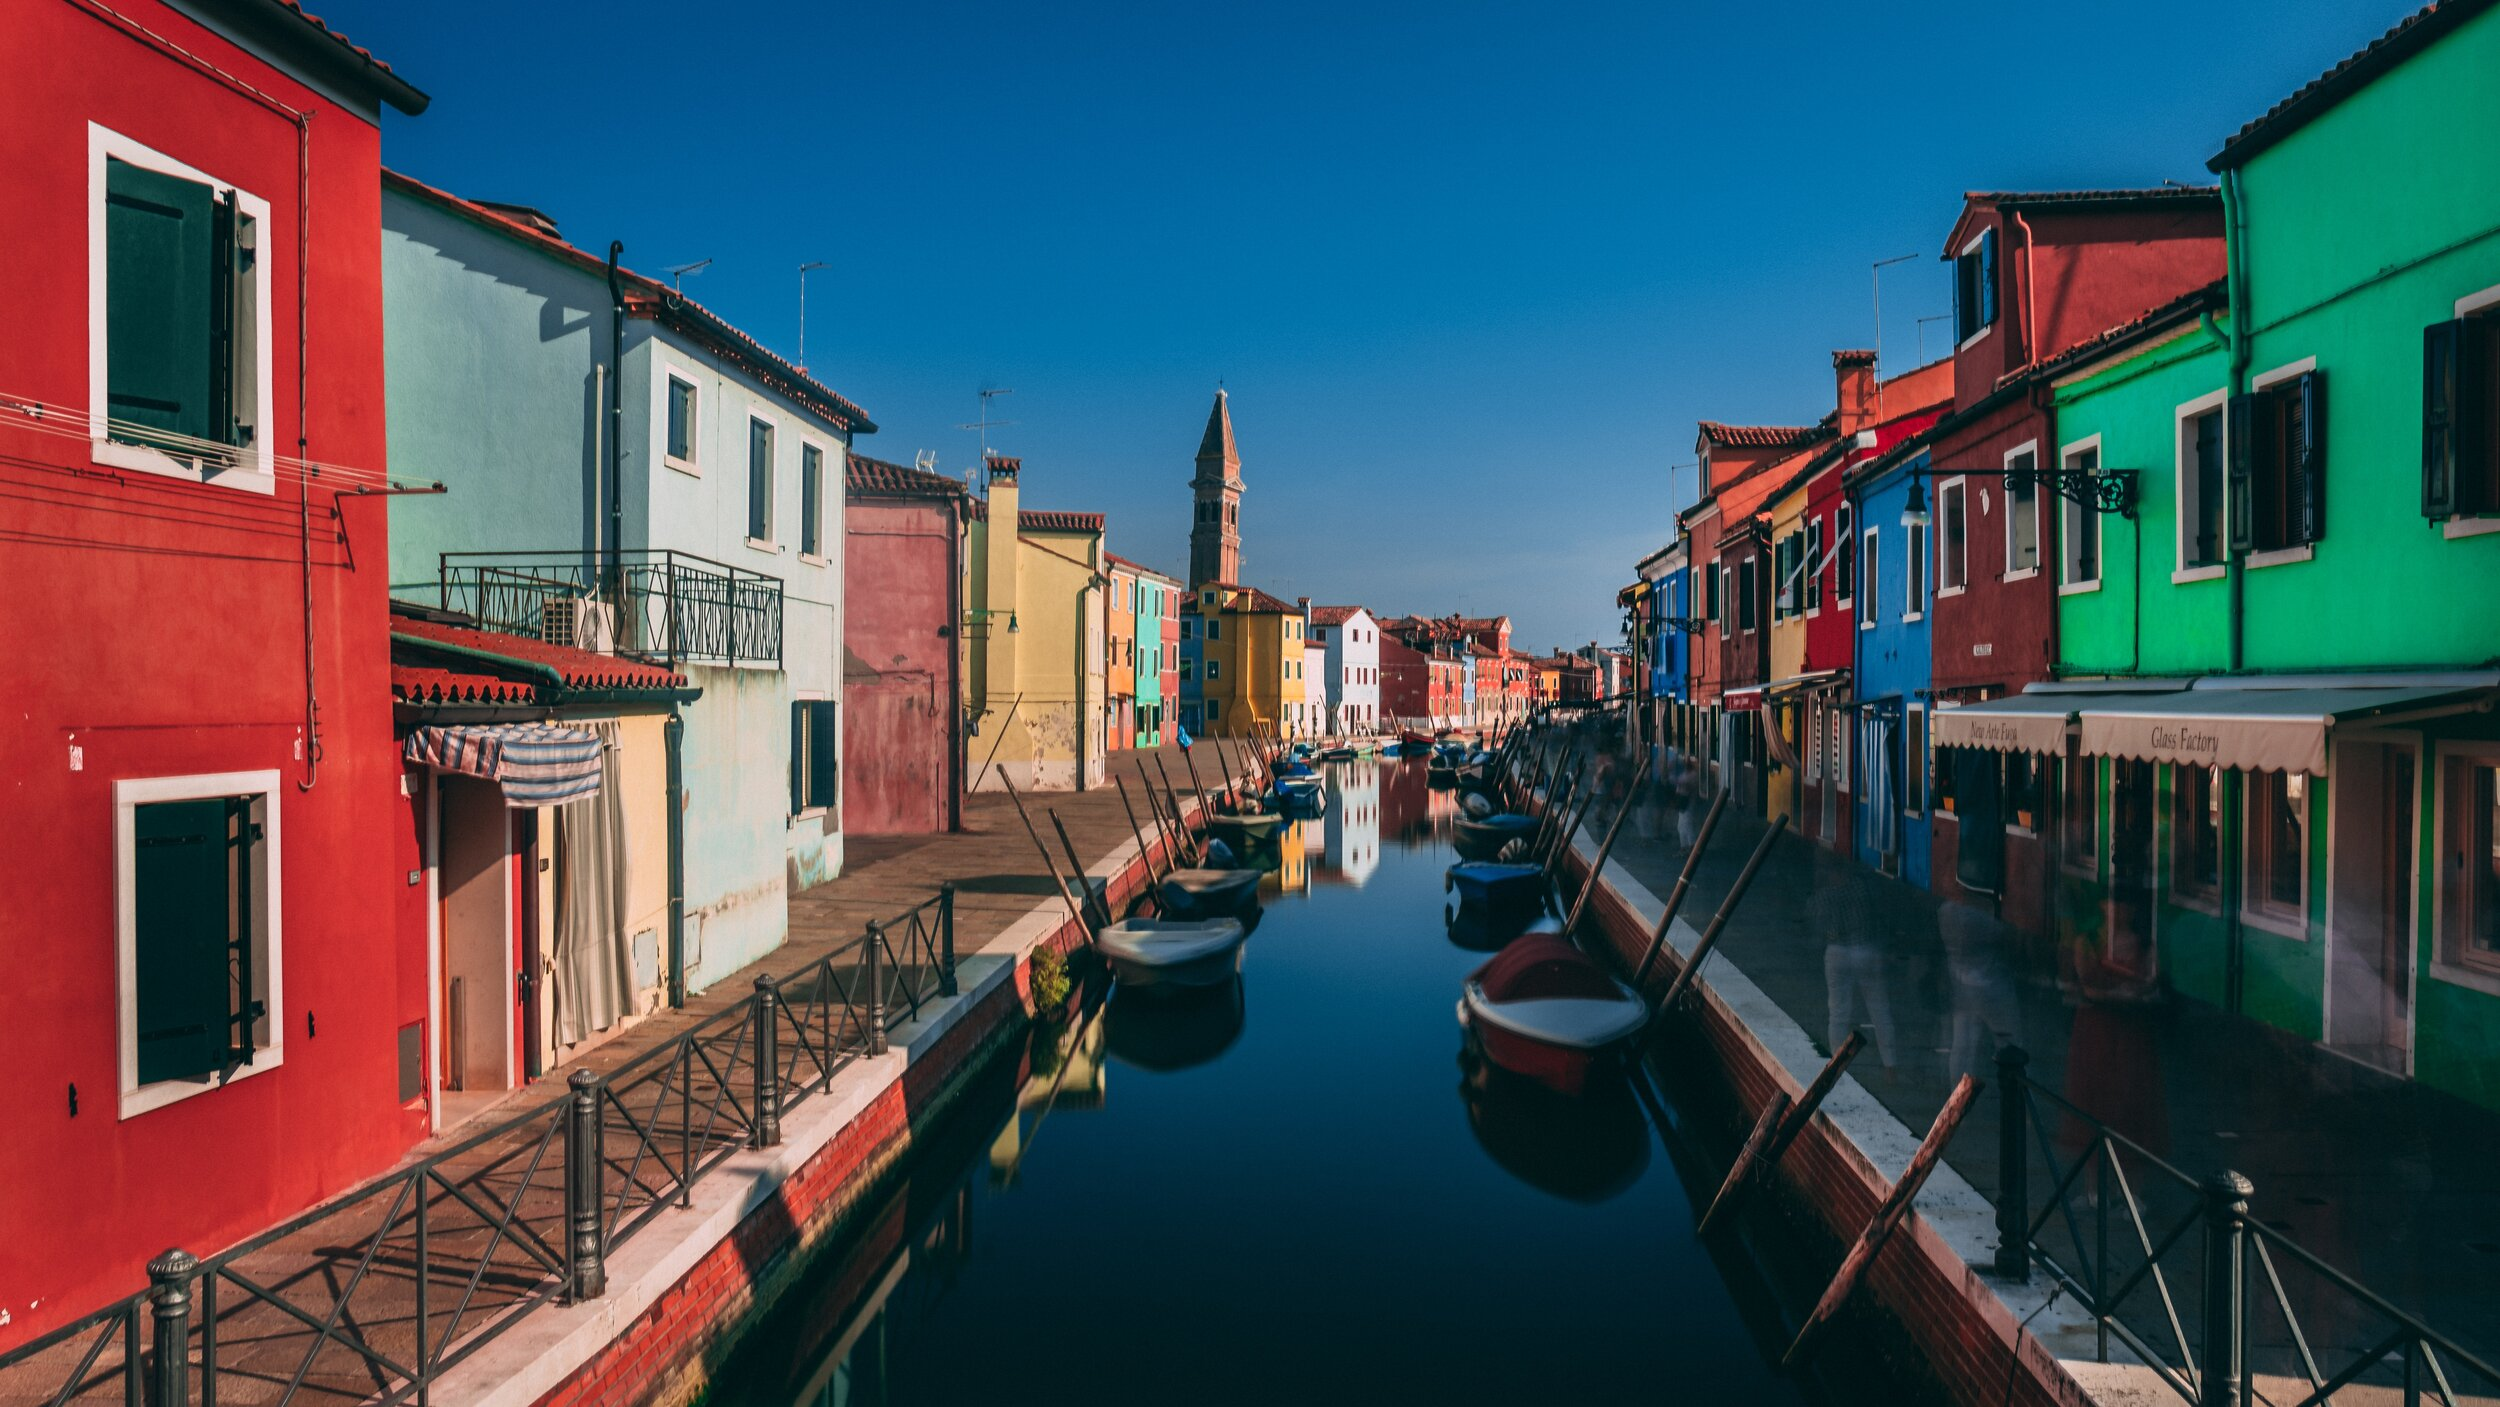 architecture-boats-buildings-1796733 copy.jpg